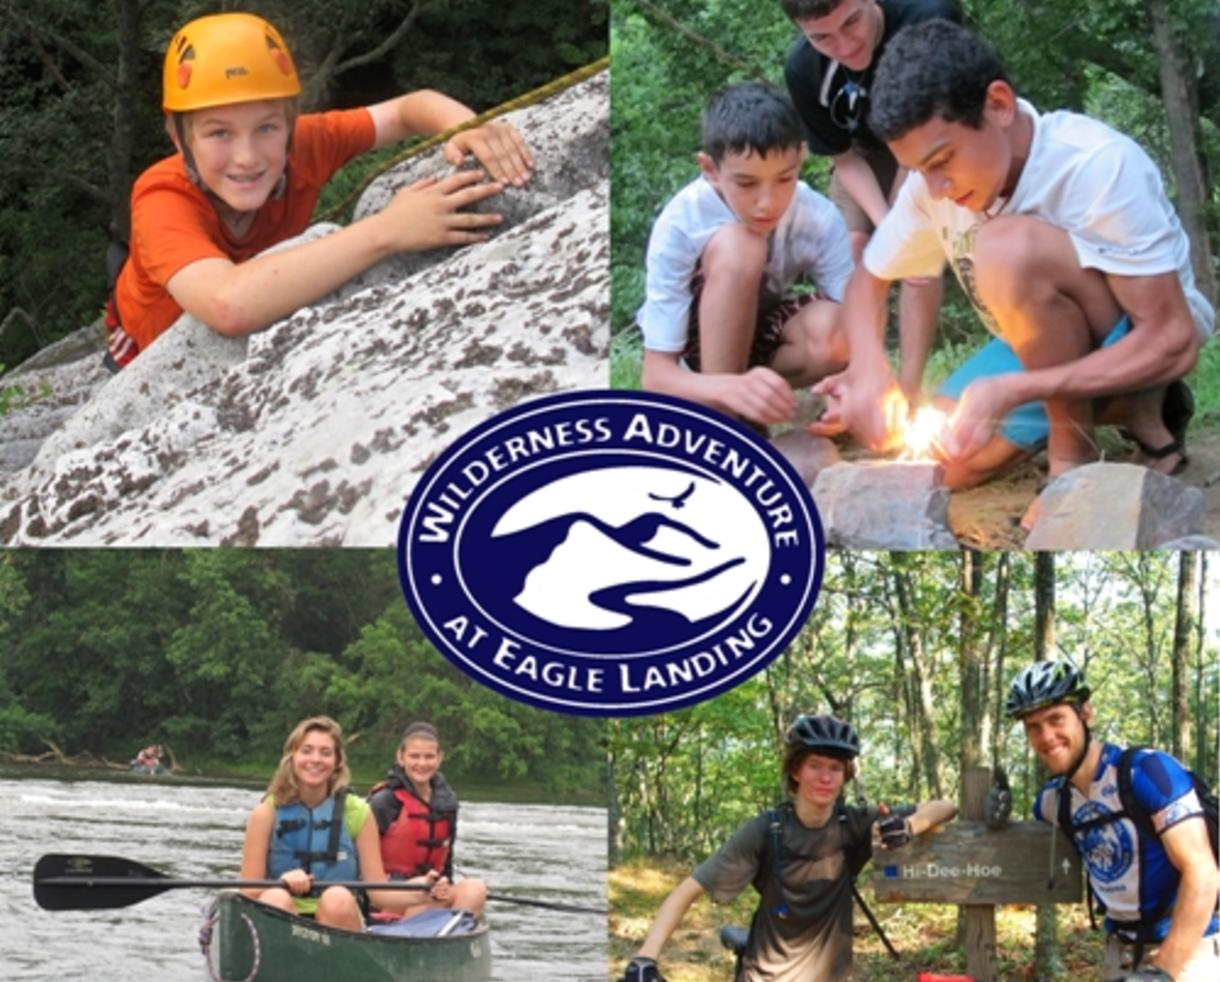 $649 for 6-Day OR $999 for 13-Day Wilderness Adventure at Eagle Landing Outdoor Adventure Sleepaway Camp for Ages 8-17 in New Castle, VA (Up to 41% Off)